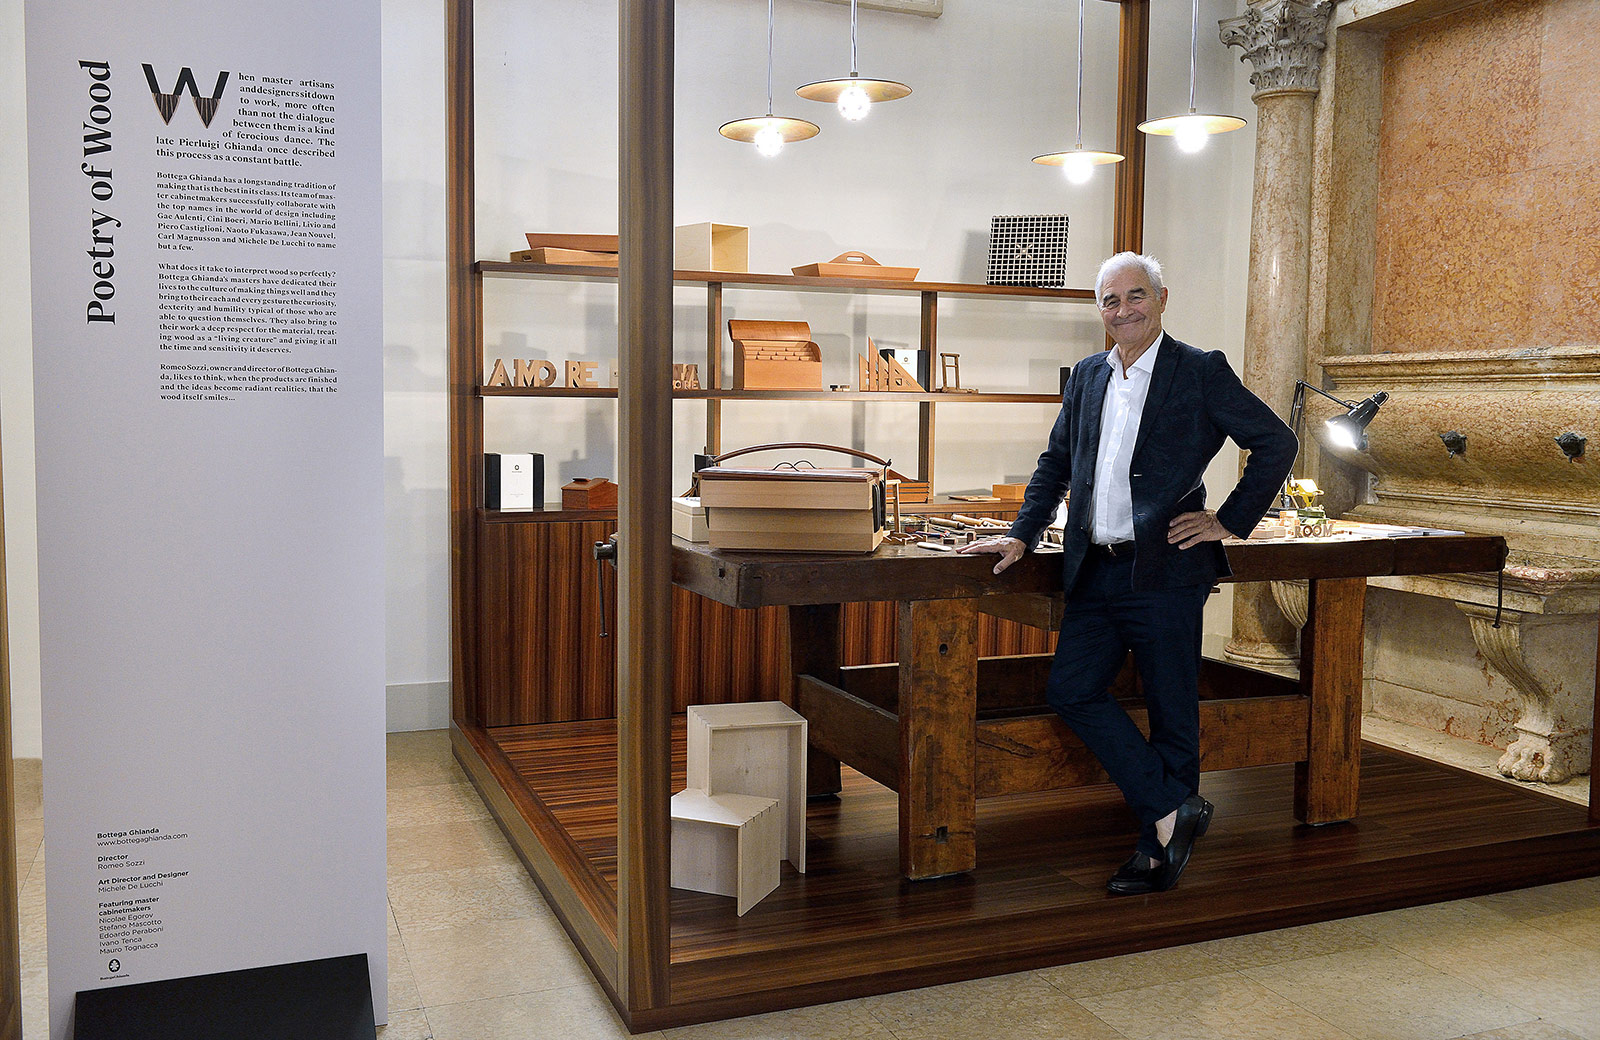 exhibition of Bottega Ghianda at Milan Design Week